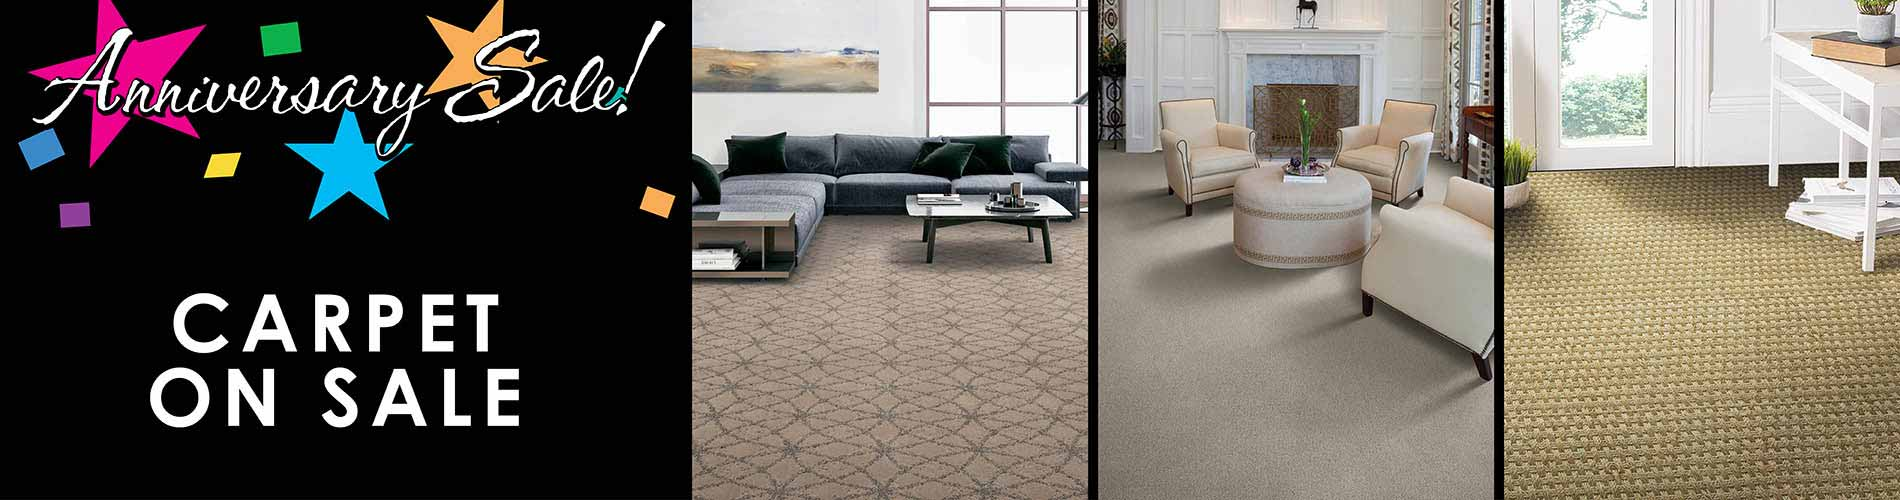 Save on carpet during our anniversary Sale at LaCour's Carpet World